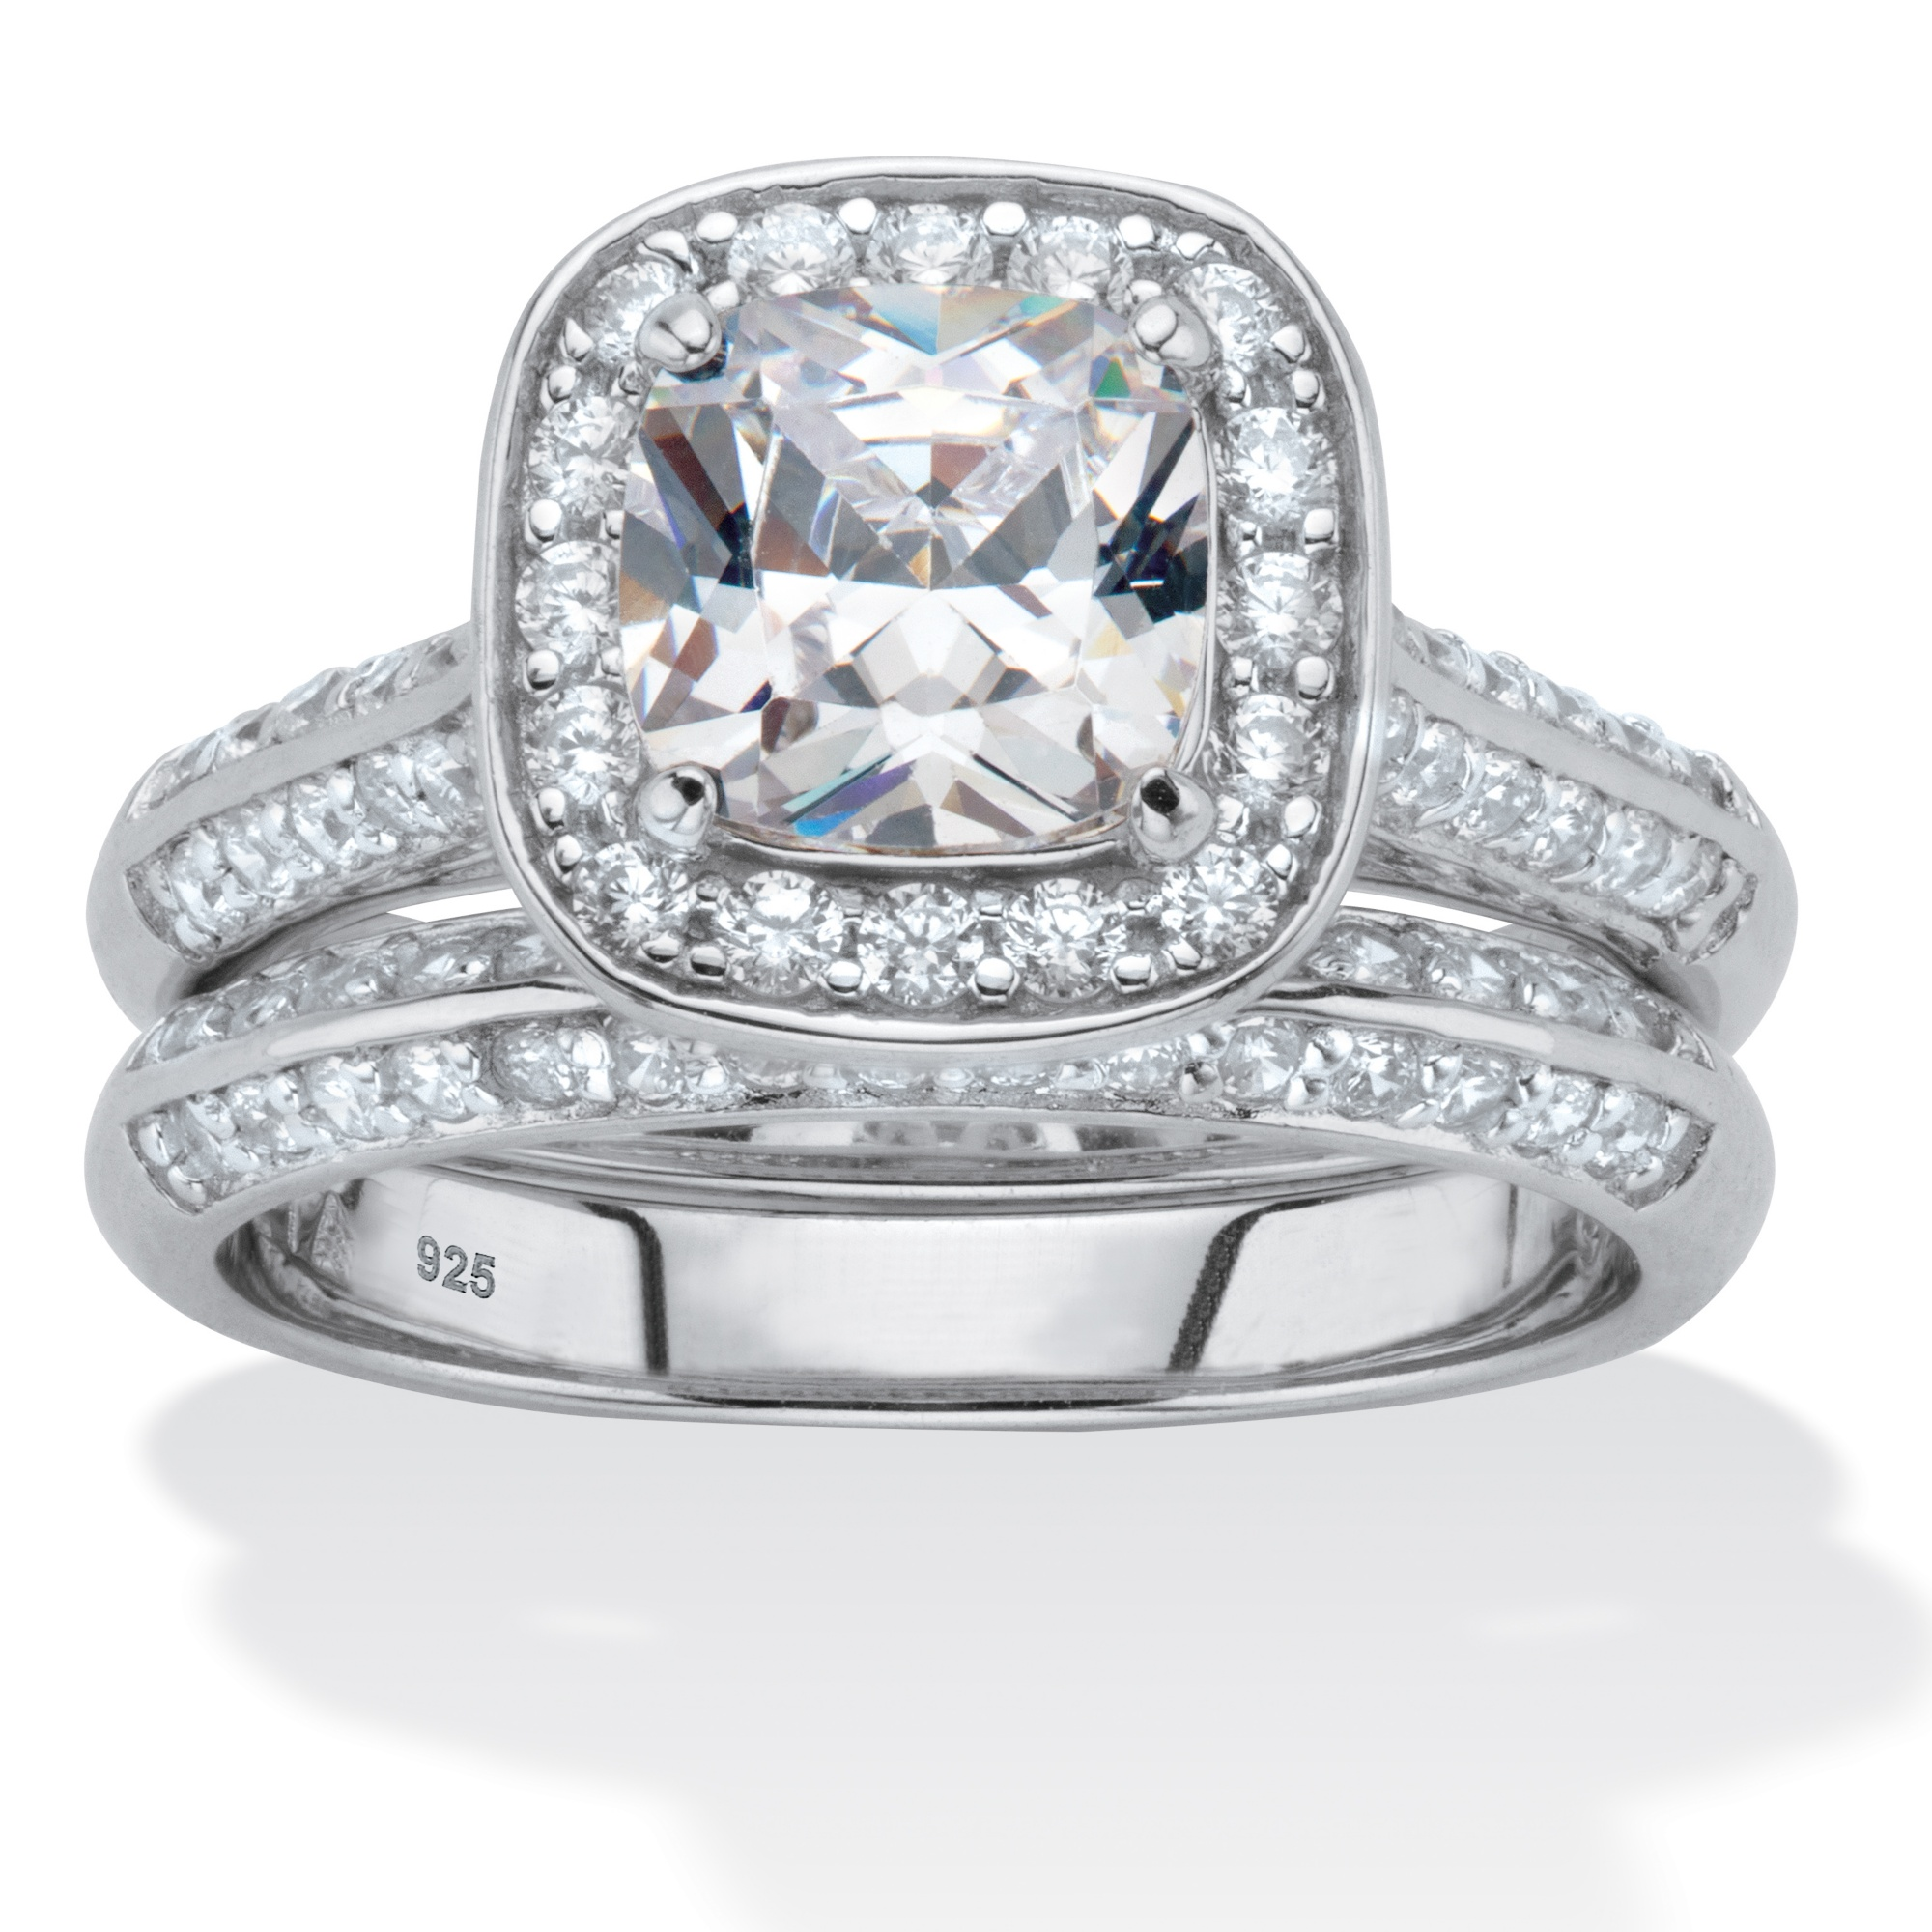 2 66 Tcw Round White Cubic Zirconia 2 Piece Halo Bridal: 2.08 TCW Cushion-Cut Cubic Zirconia Platinum Over .925